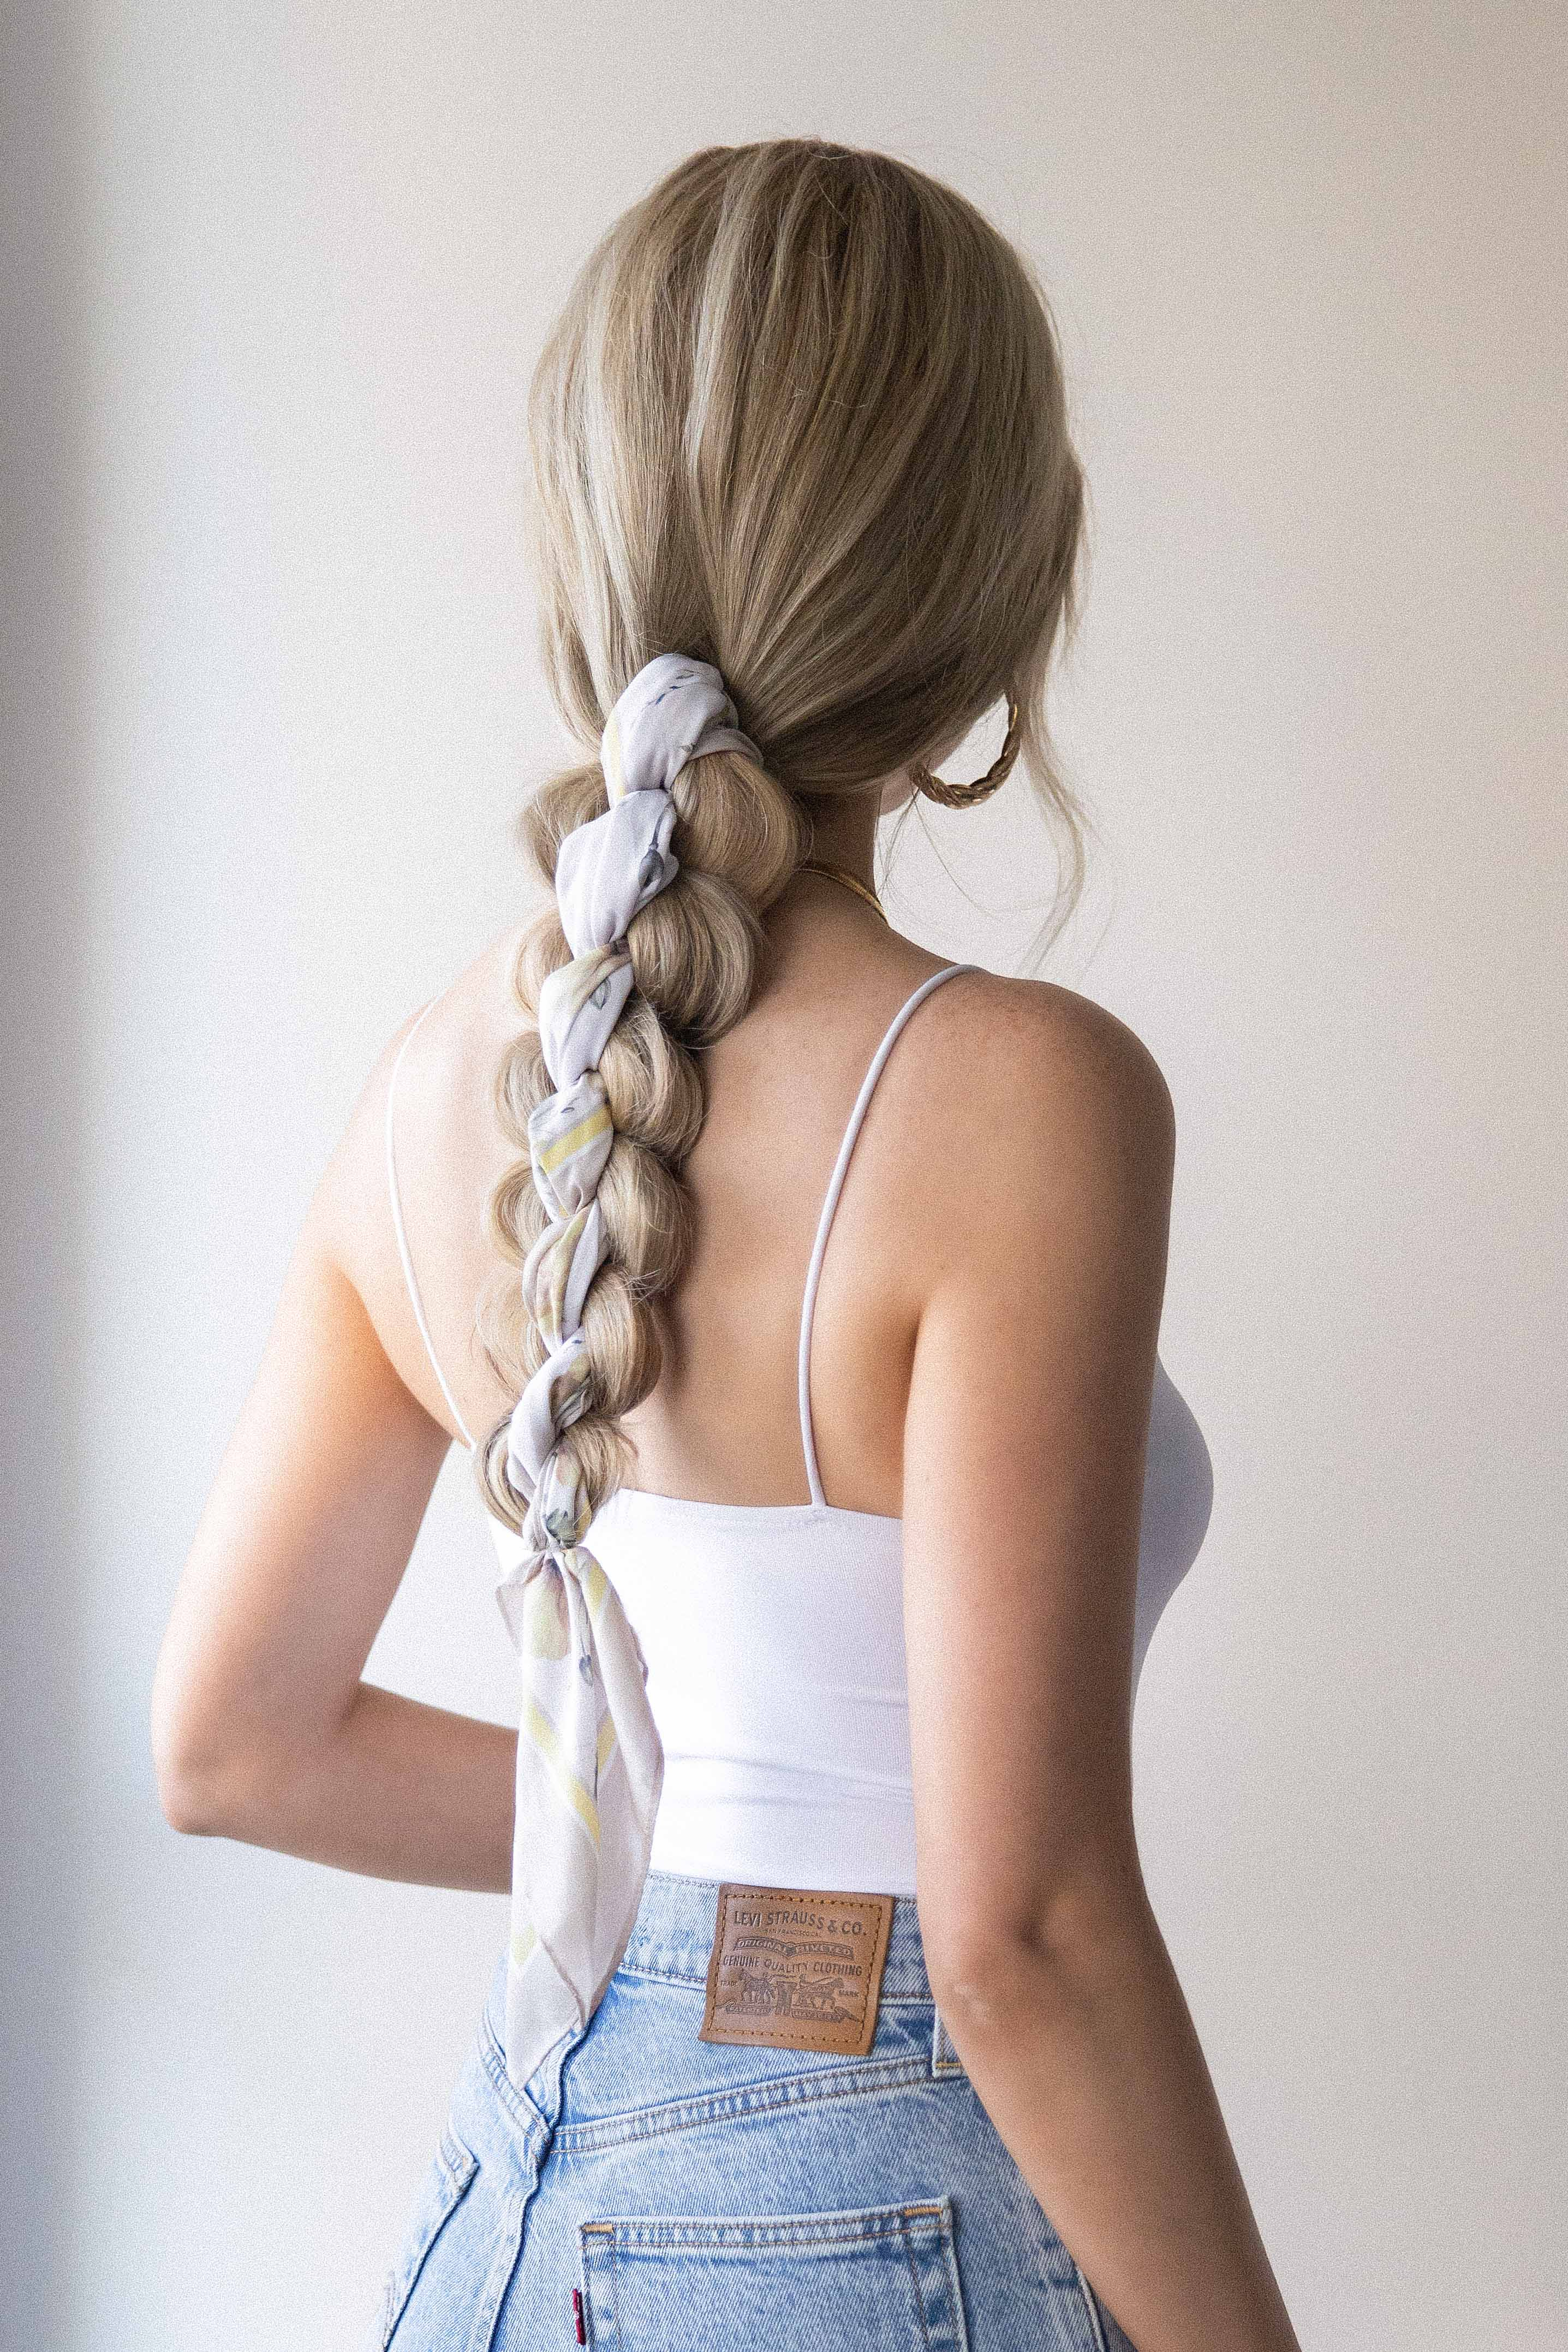 EASY BRAIDED PONYTAIL HAIRSTYLE for Medium - Long Hair Lengths + Hair Tutorial